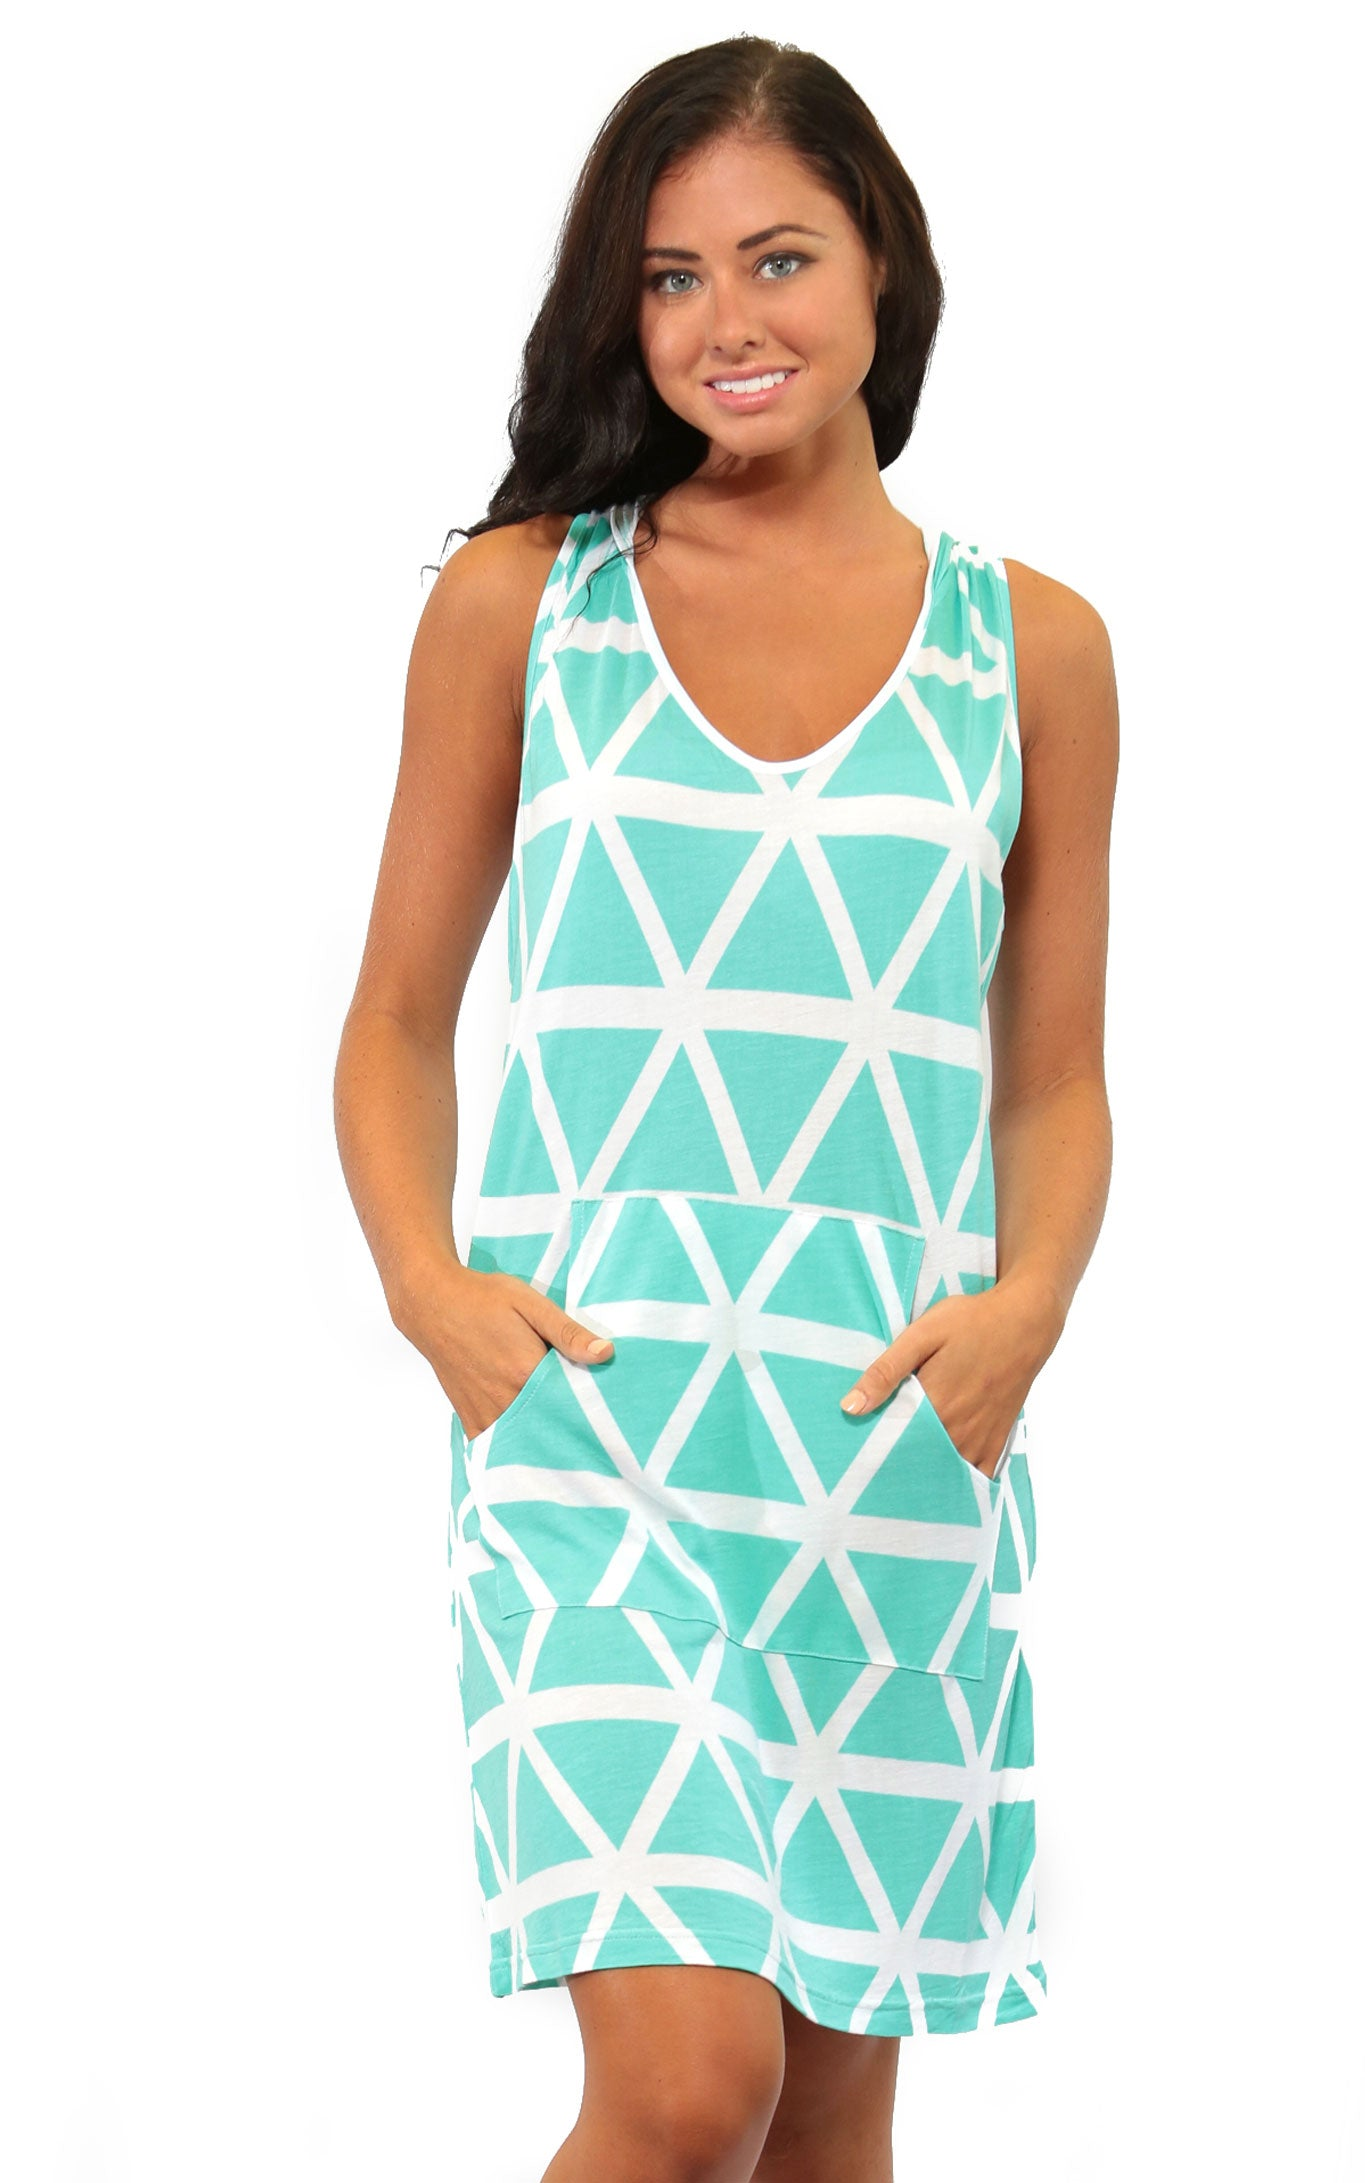 Aqua Breeze Tara Sleeveless Hoodie Dress